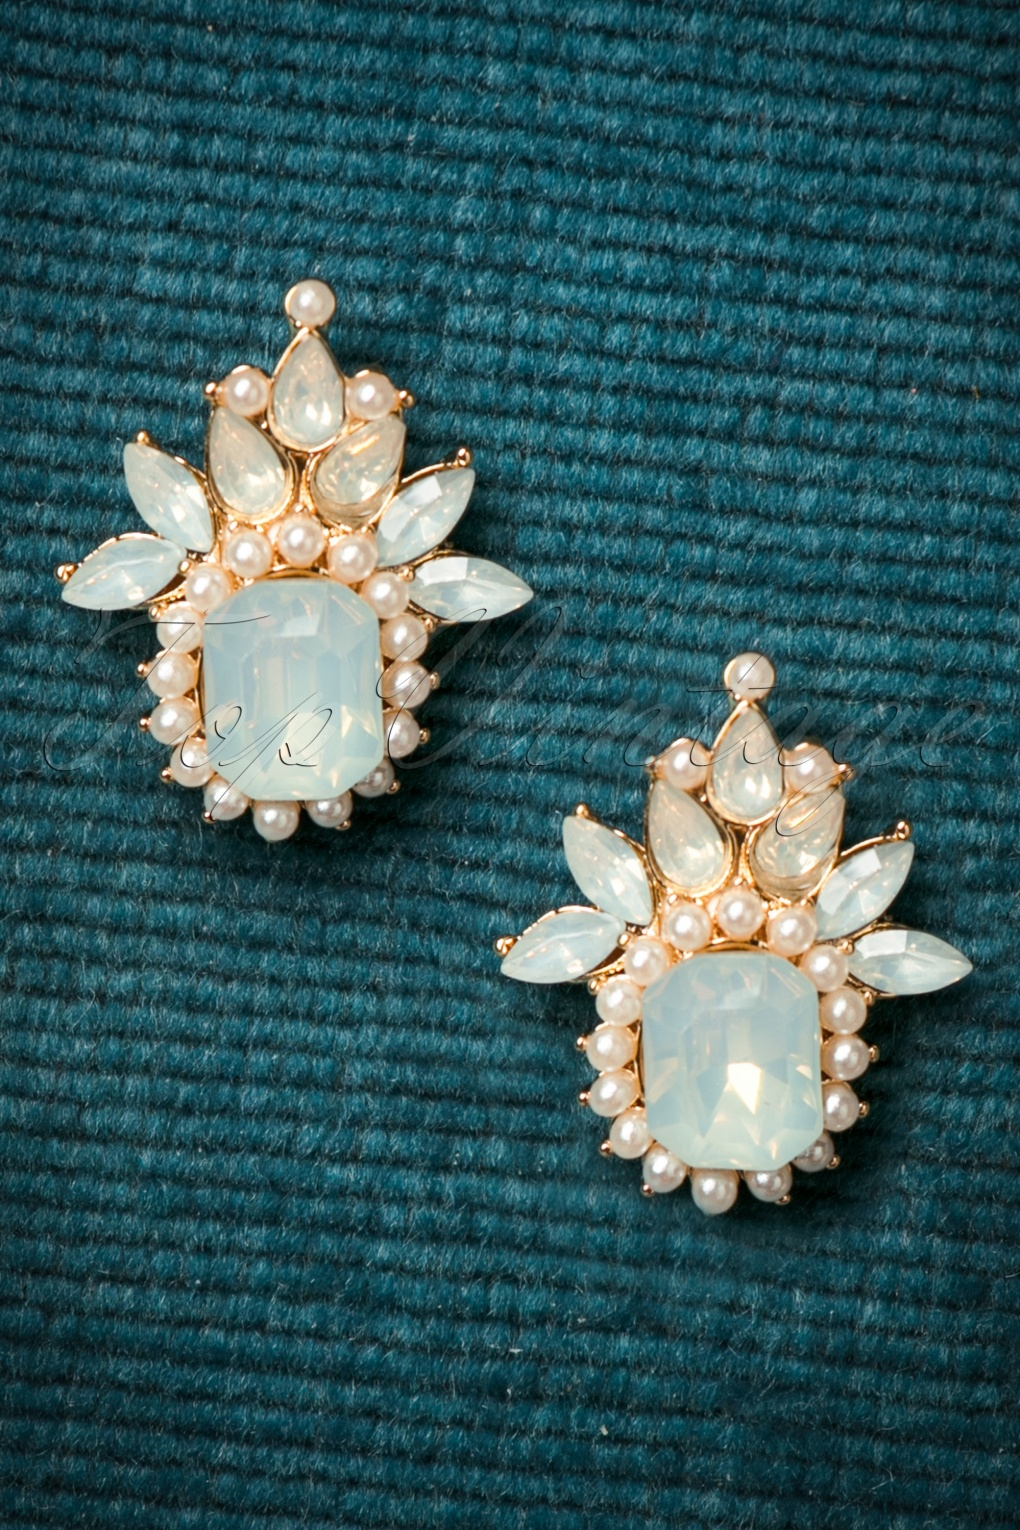 50s Jewelry: Earrings, Necklace, Brooch, Bracelet 50s Ice Queen Earstuds in Gold £10.55 AT vintagedancer.com